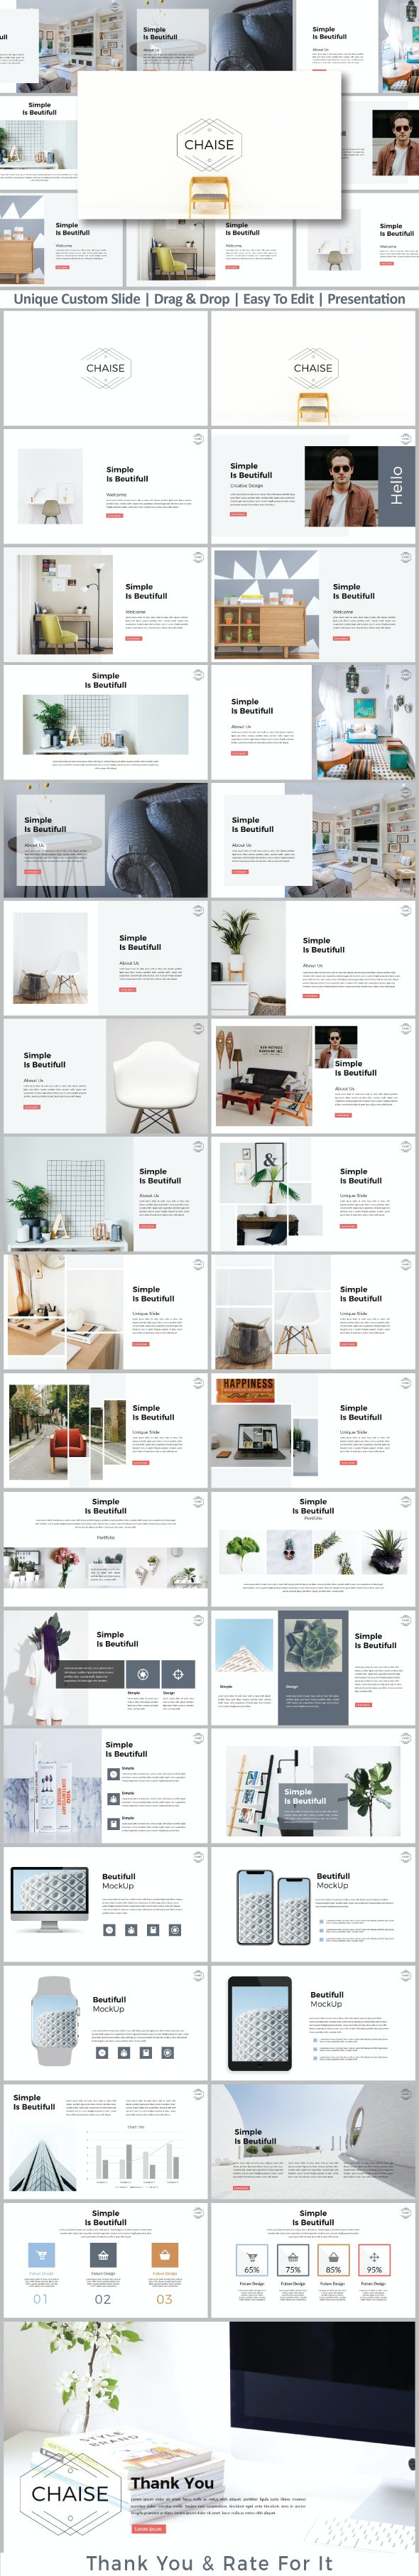 Chaise Presentation Template - Creative PowerPoint Templates